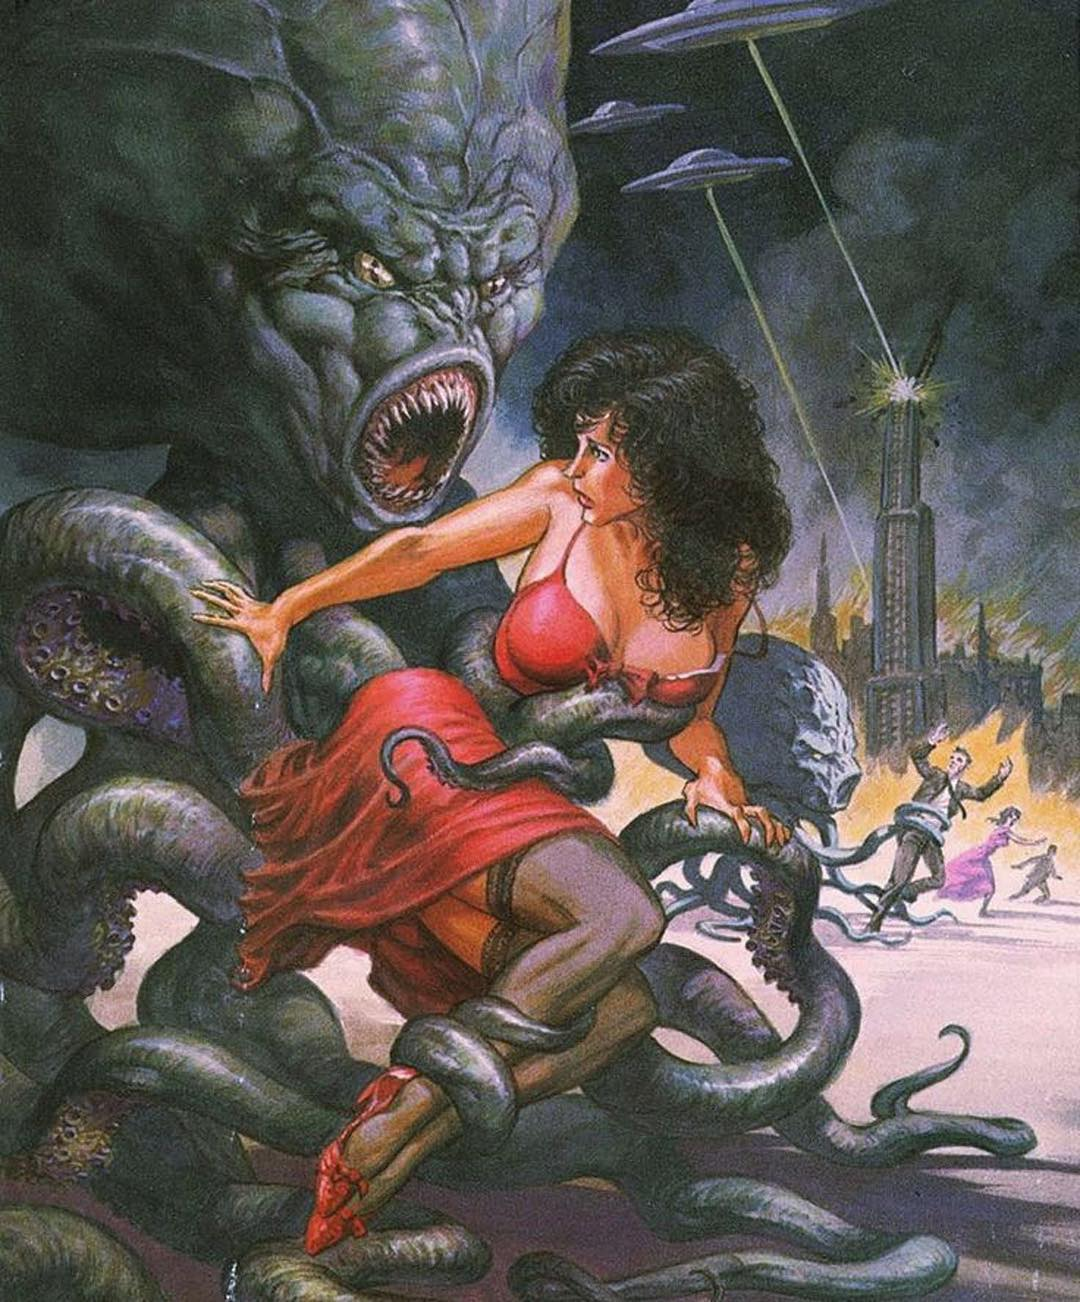 Cover art by Bernie Wrightson for Nightmare Theater issue 3 (Chaos Comics 1997